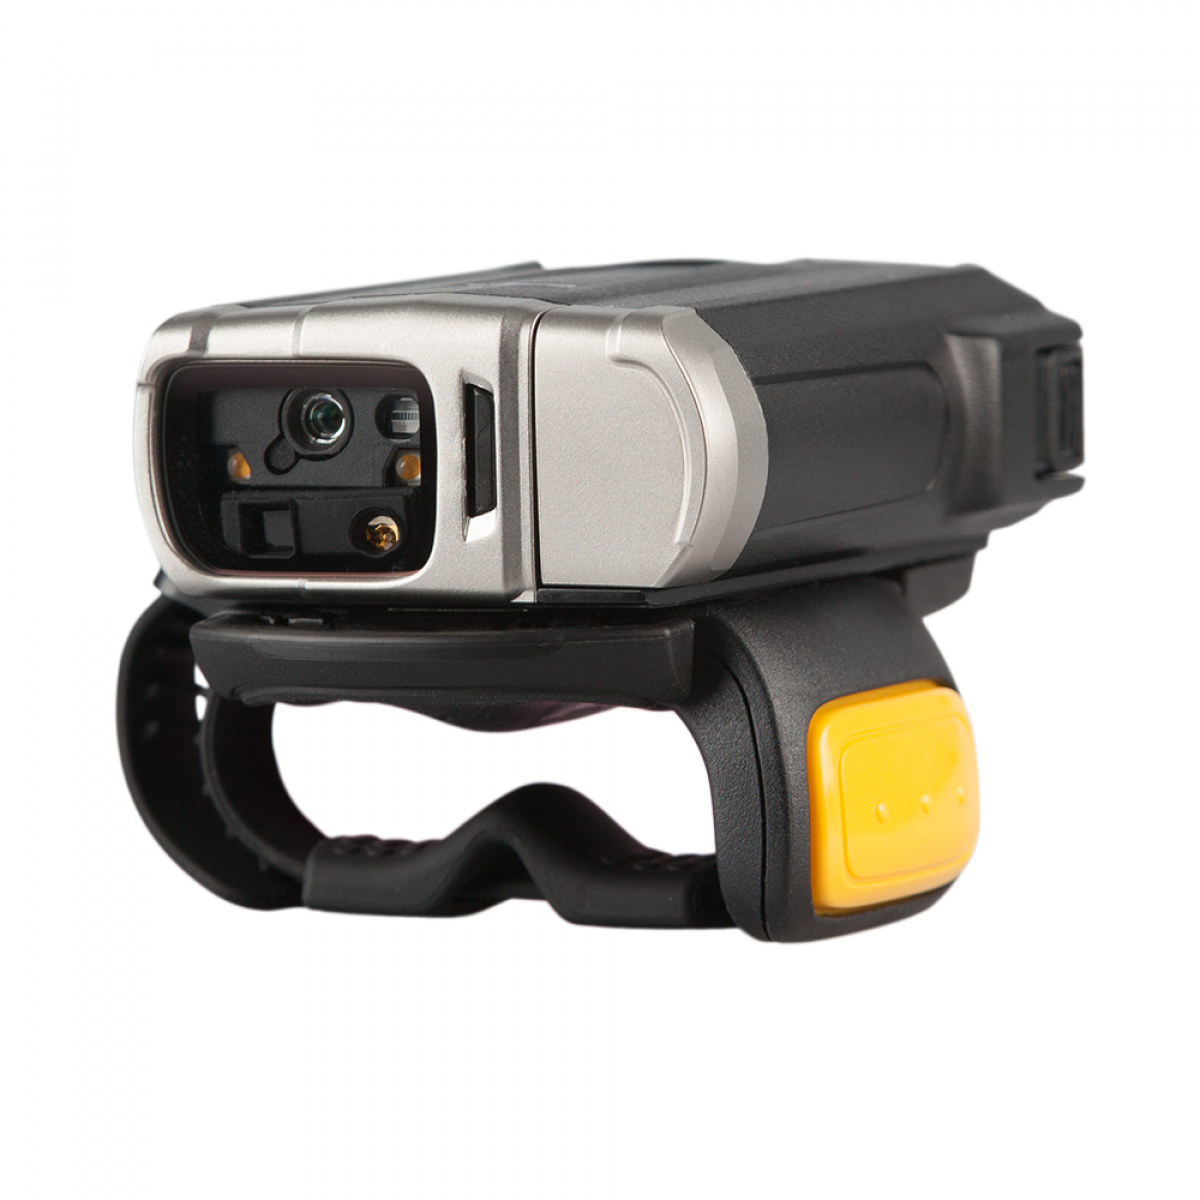 Zebra RS6000 1D and 2D barcode imager